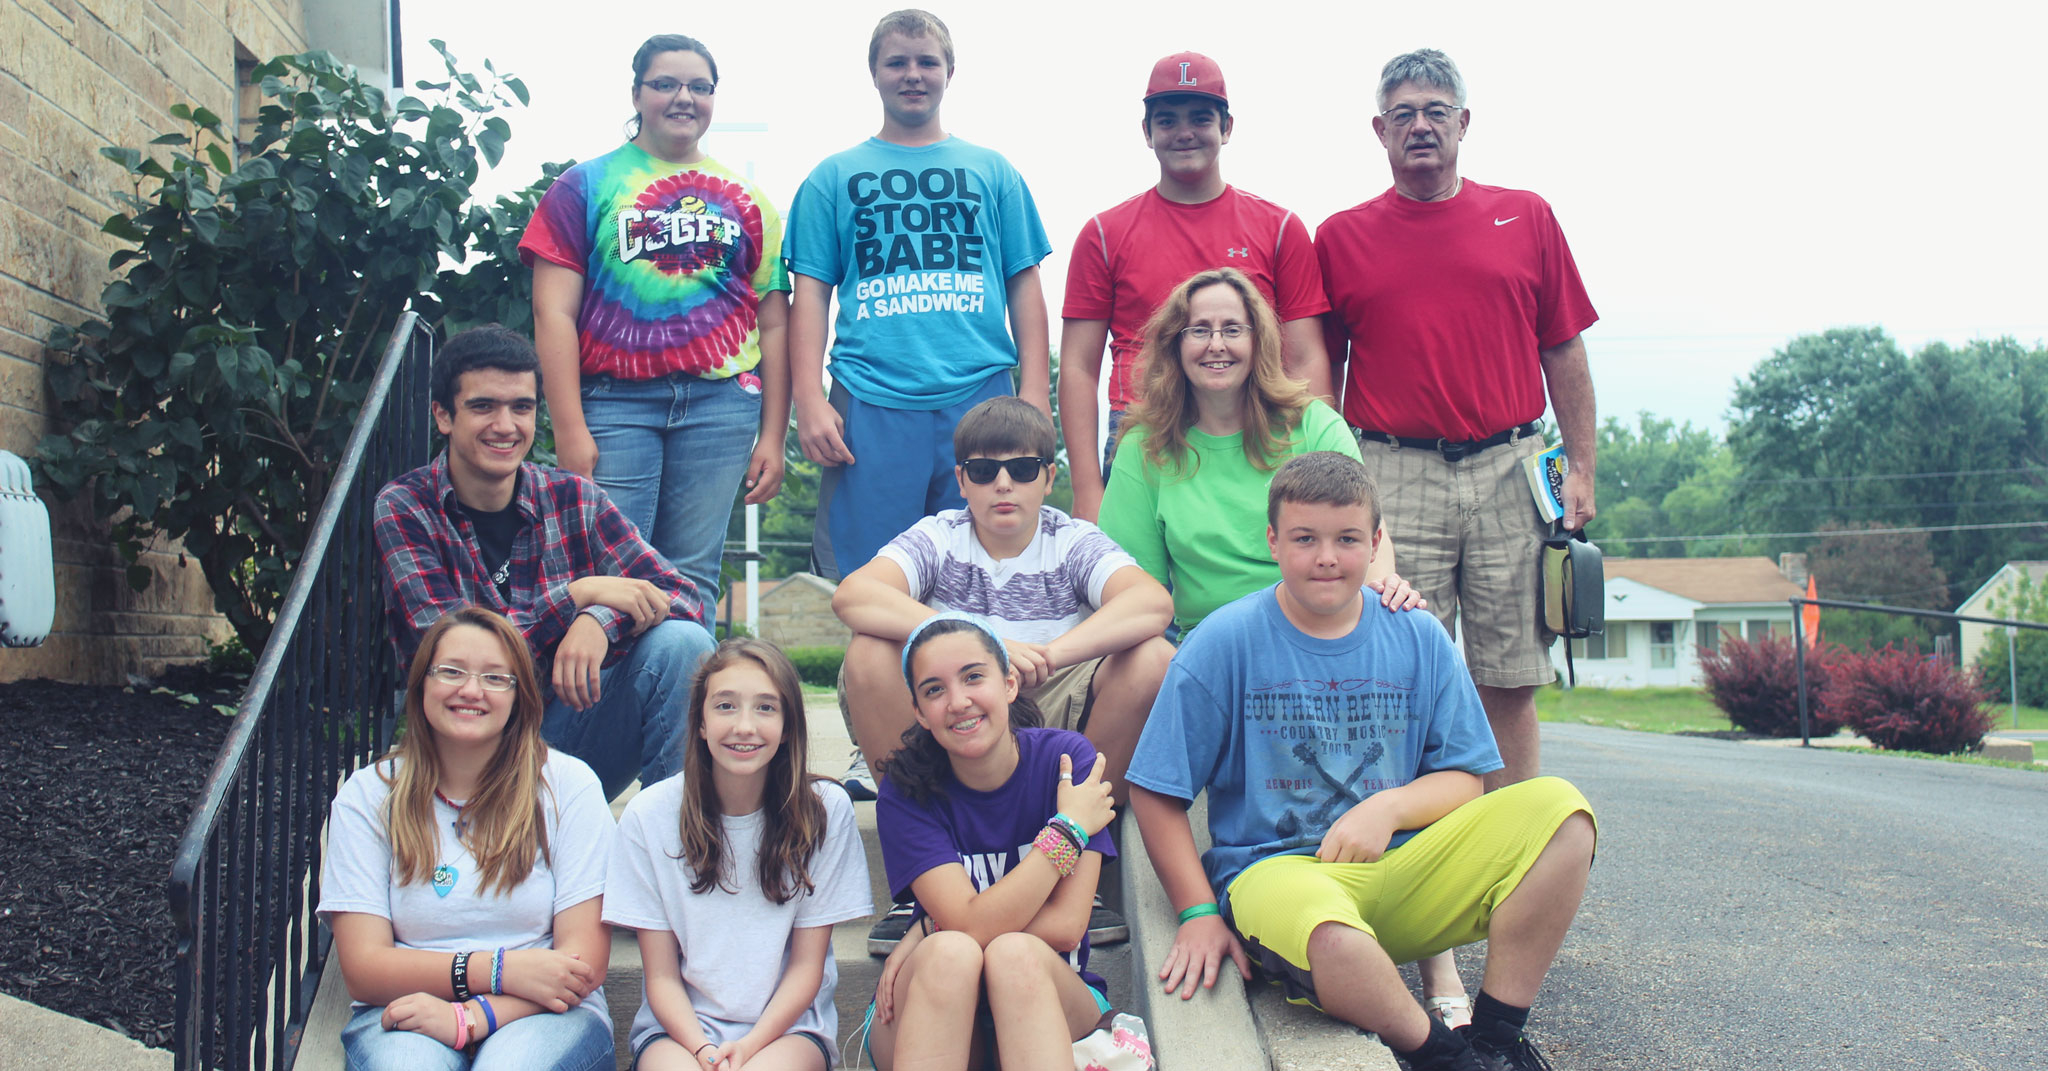 buckeye-lake-church-worship-fellowship-community-camp-andrew